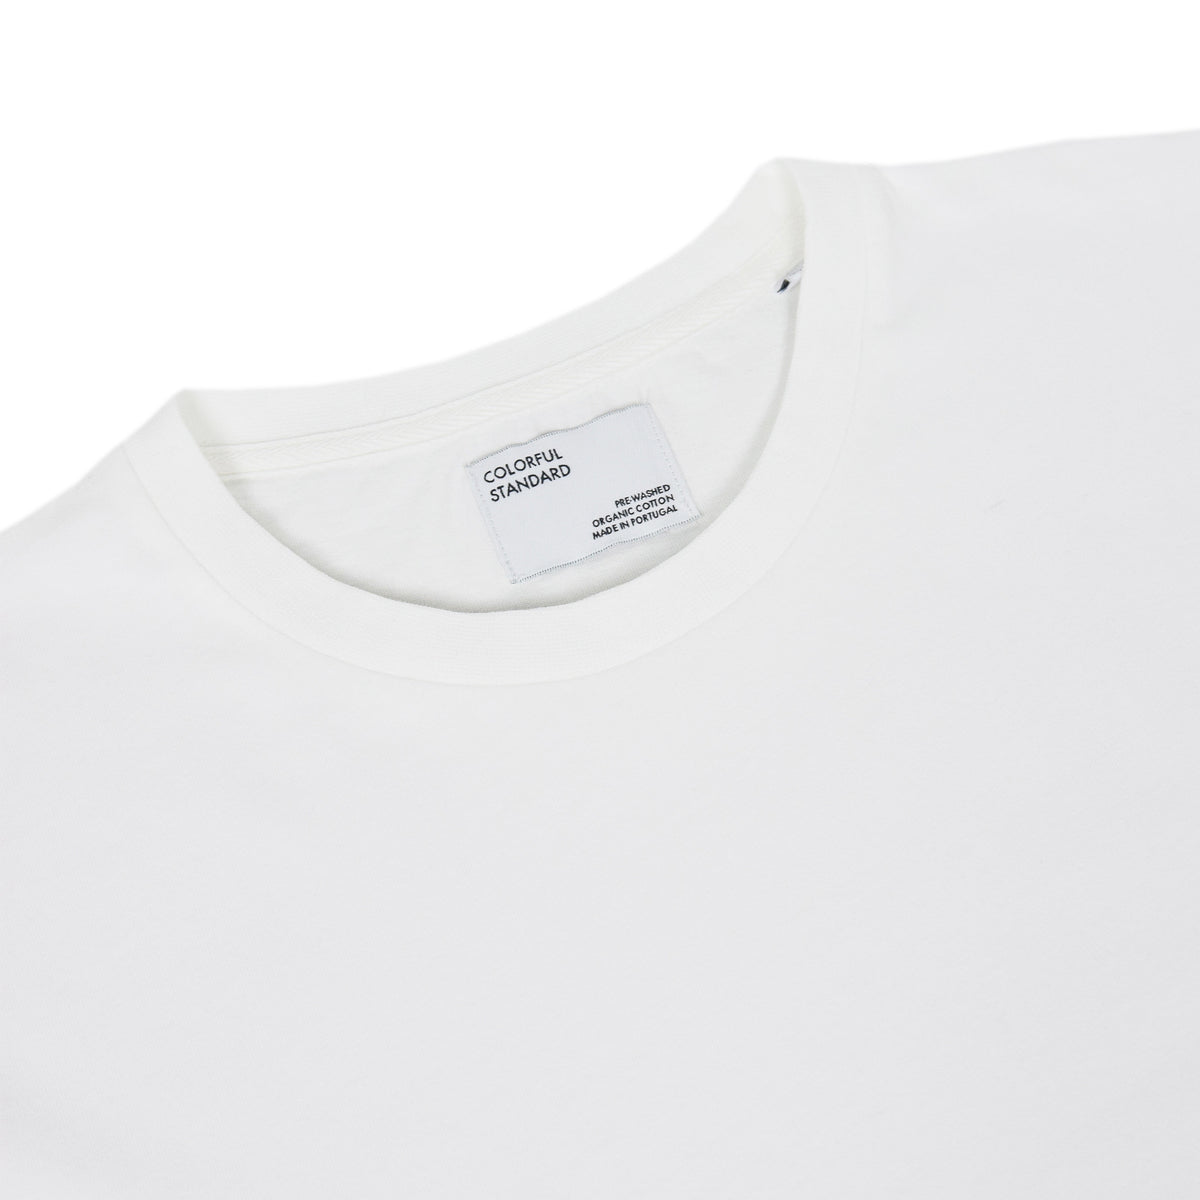 Colorful Standard Organic Cotton Tee Optical White collar